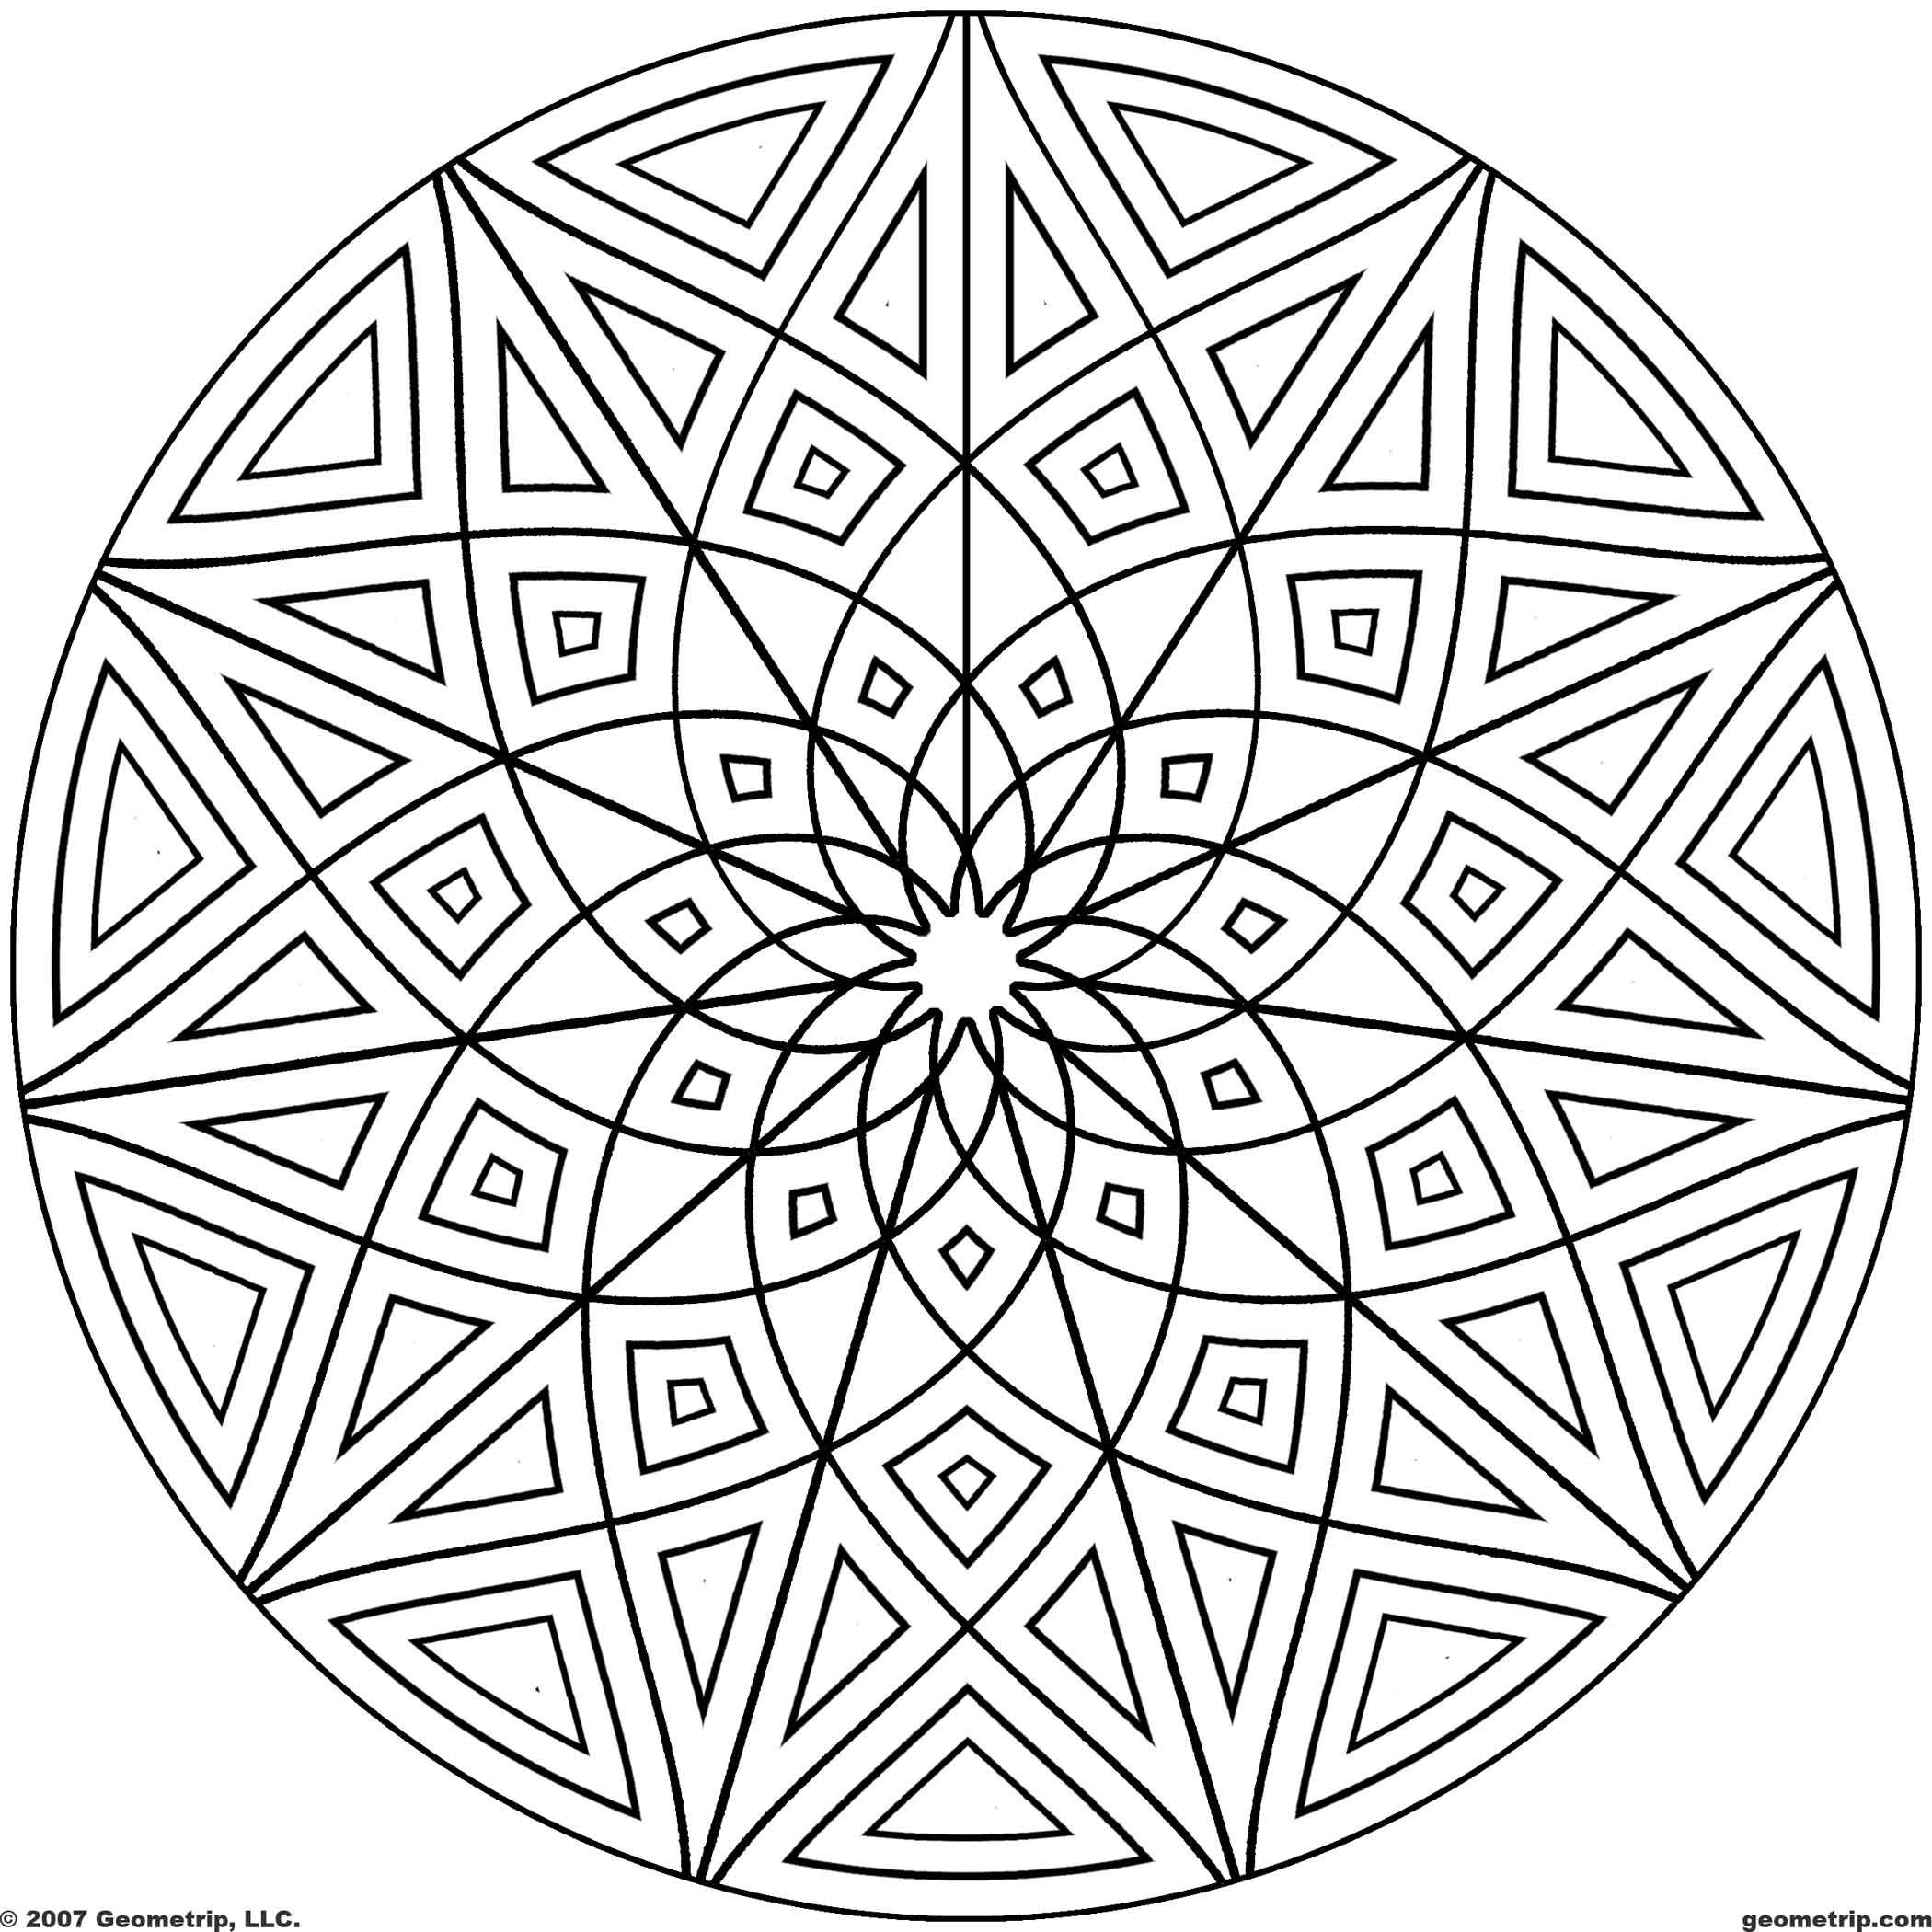 Kaleidoscope Coloring Pages Geometrip Free Geometric